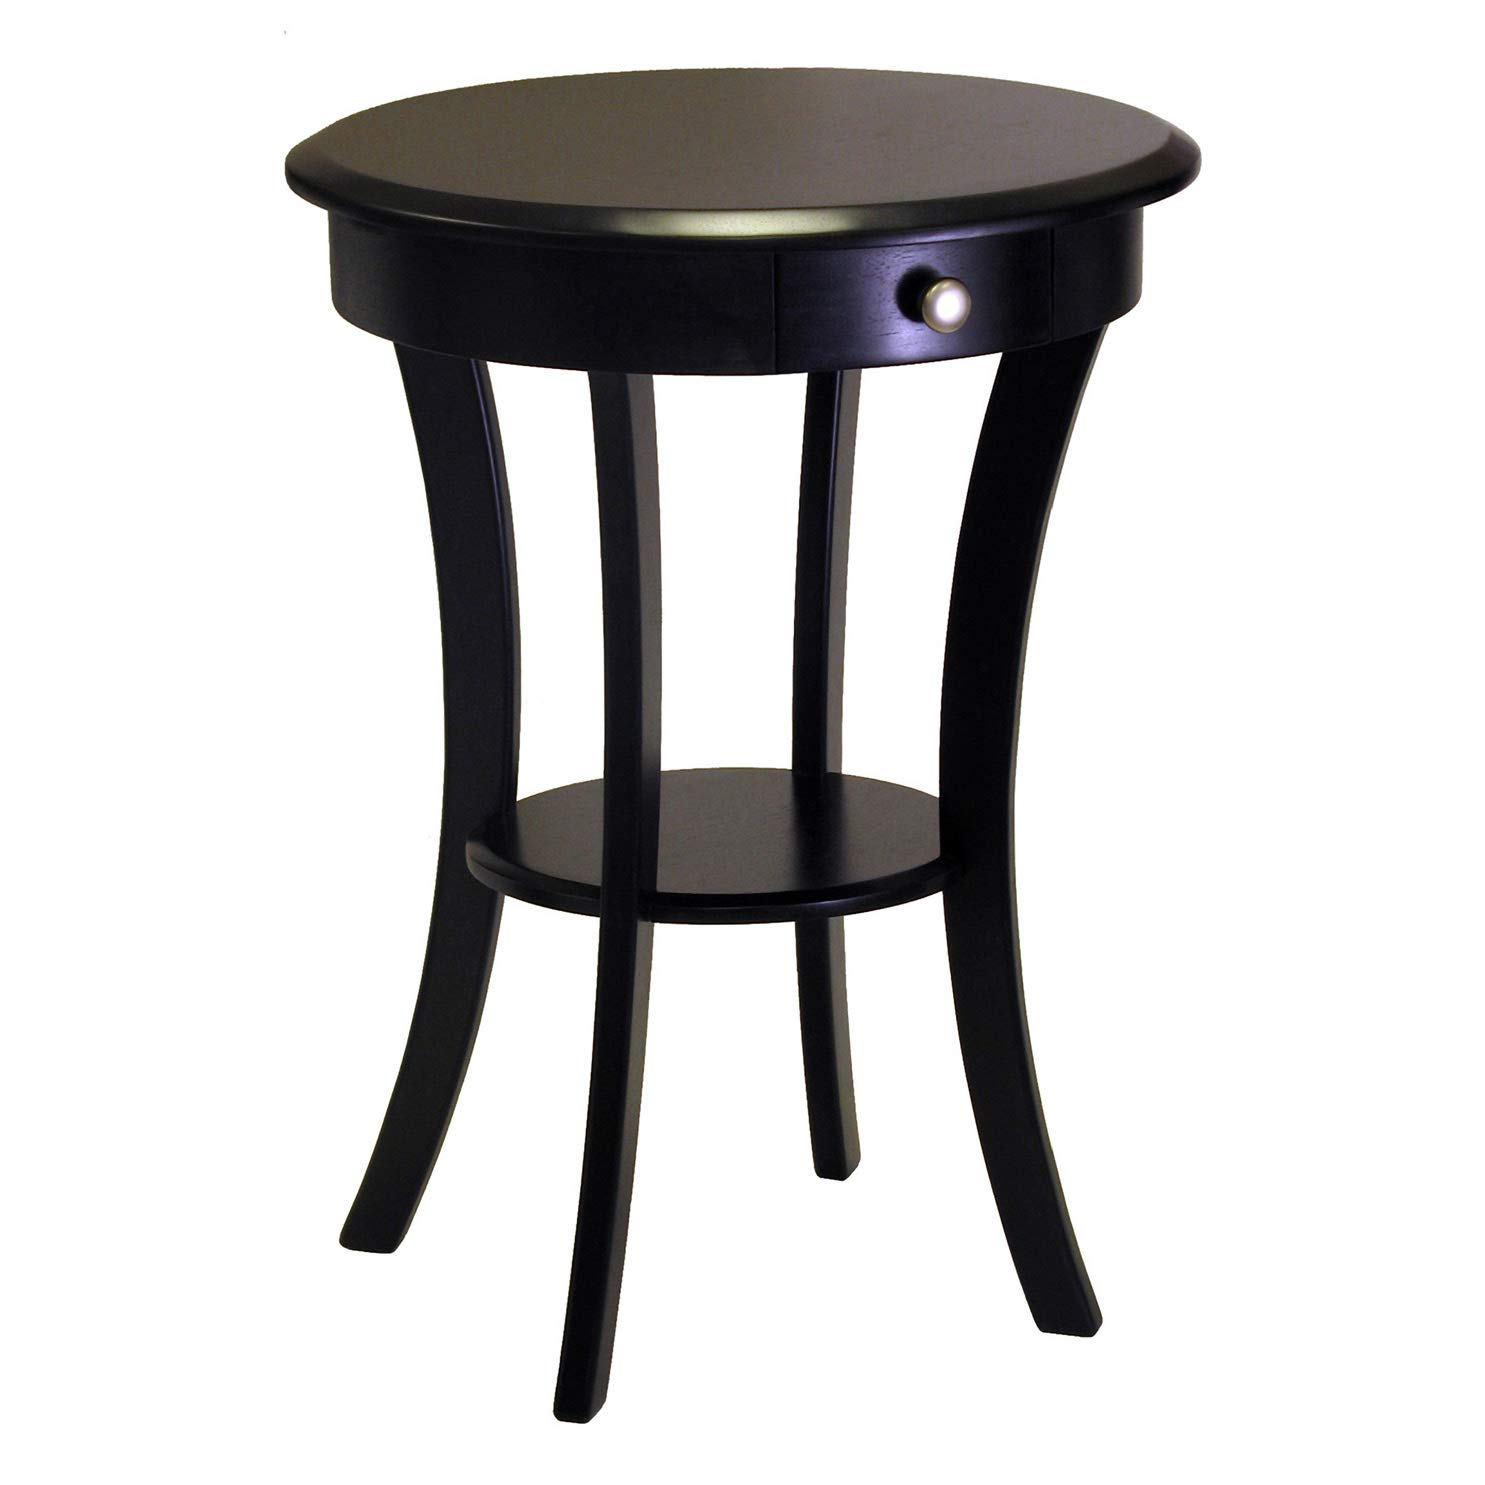 winsome wood sasha accent table black kitchen dining living room accessories ideas chinese style lamps diy base pier stools ethan allen round end crystal and brass stool blue